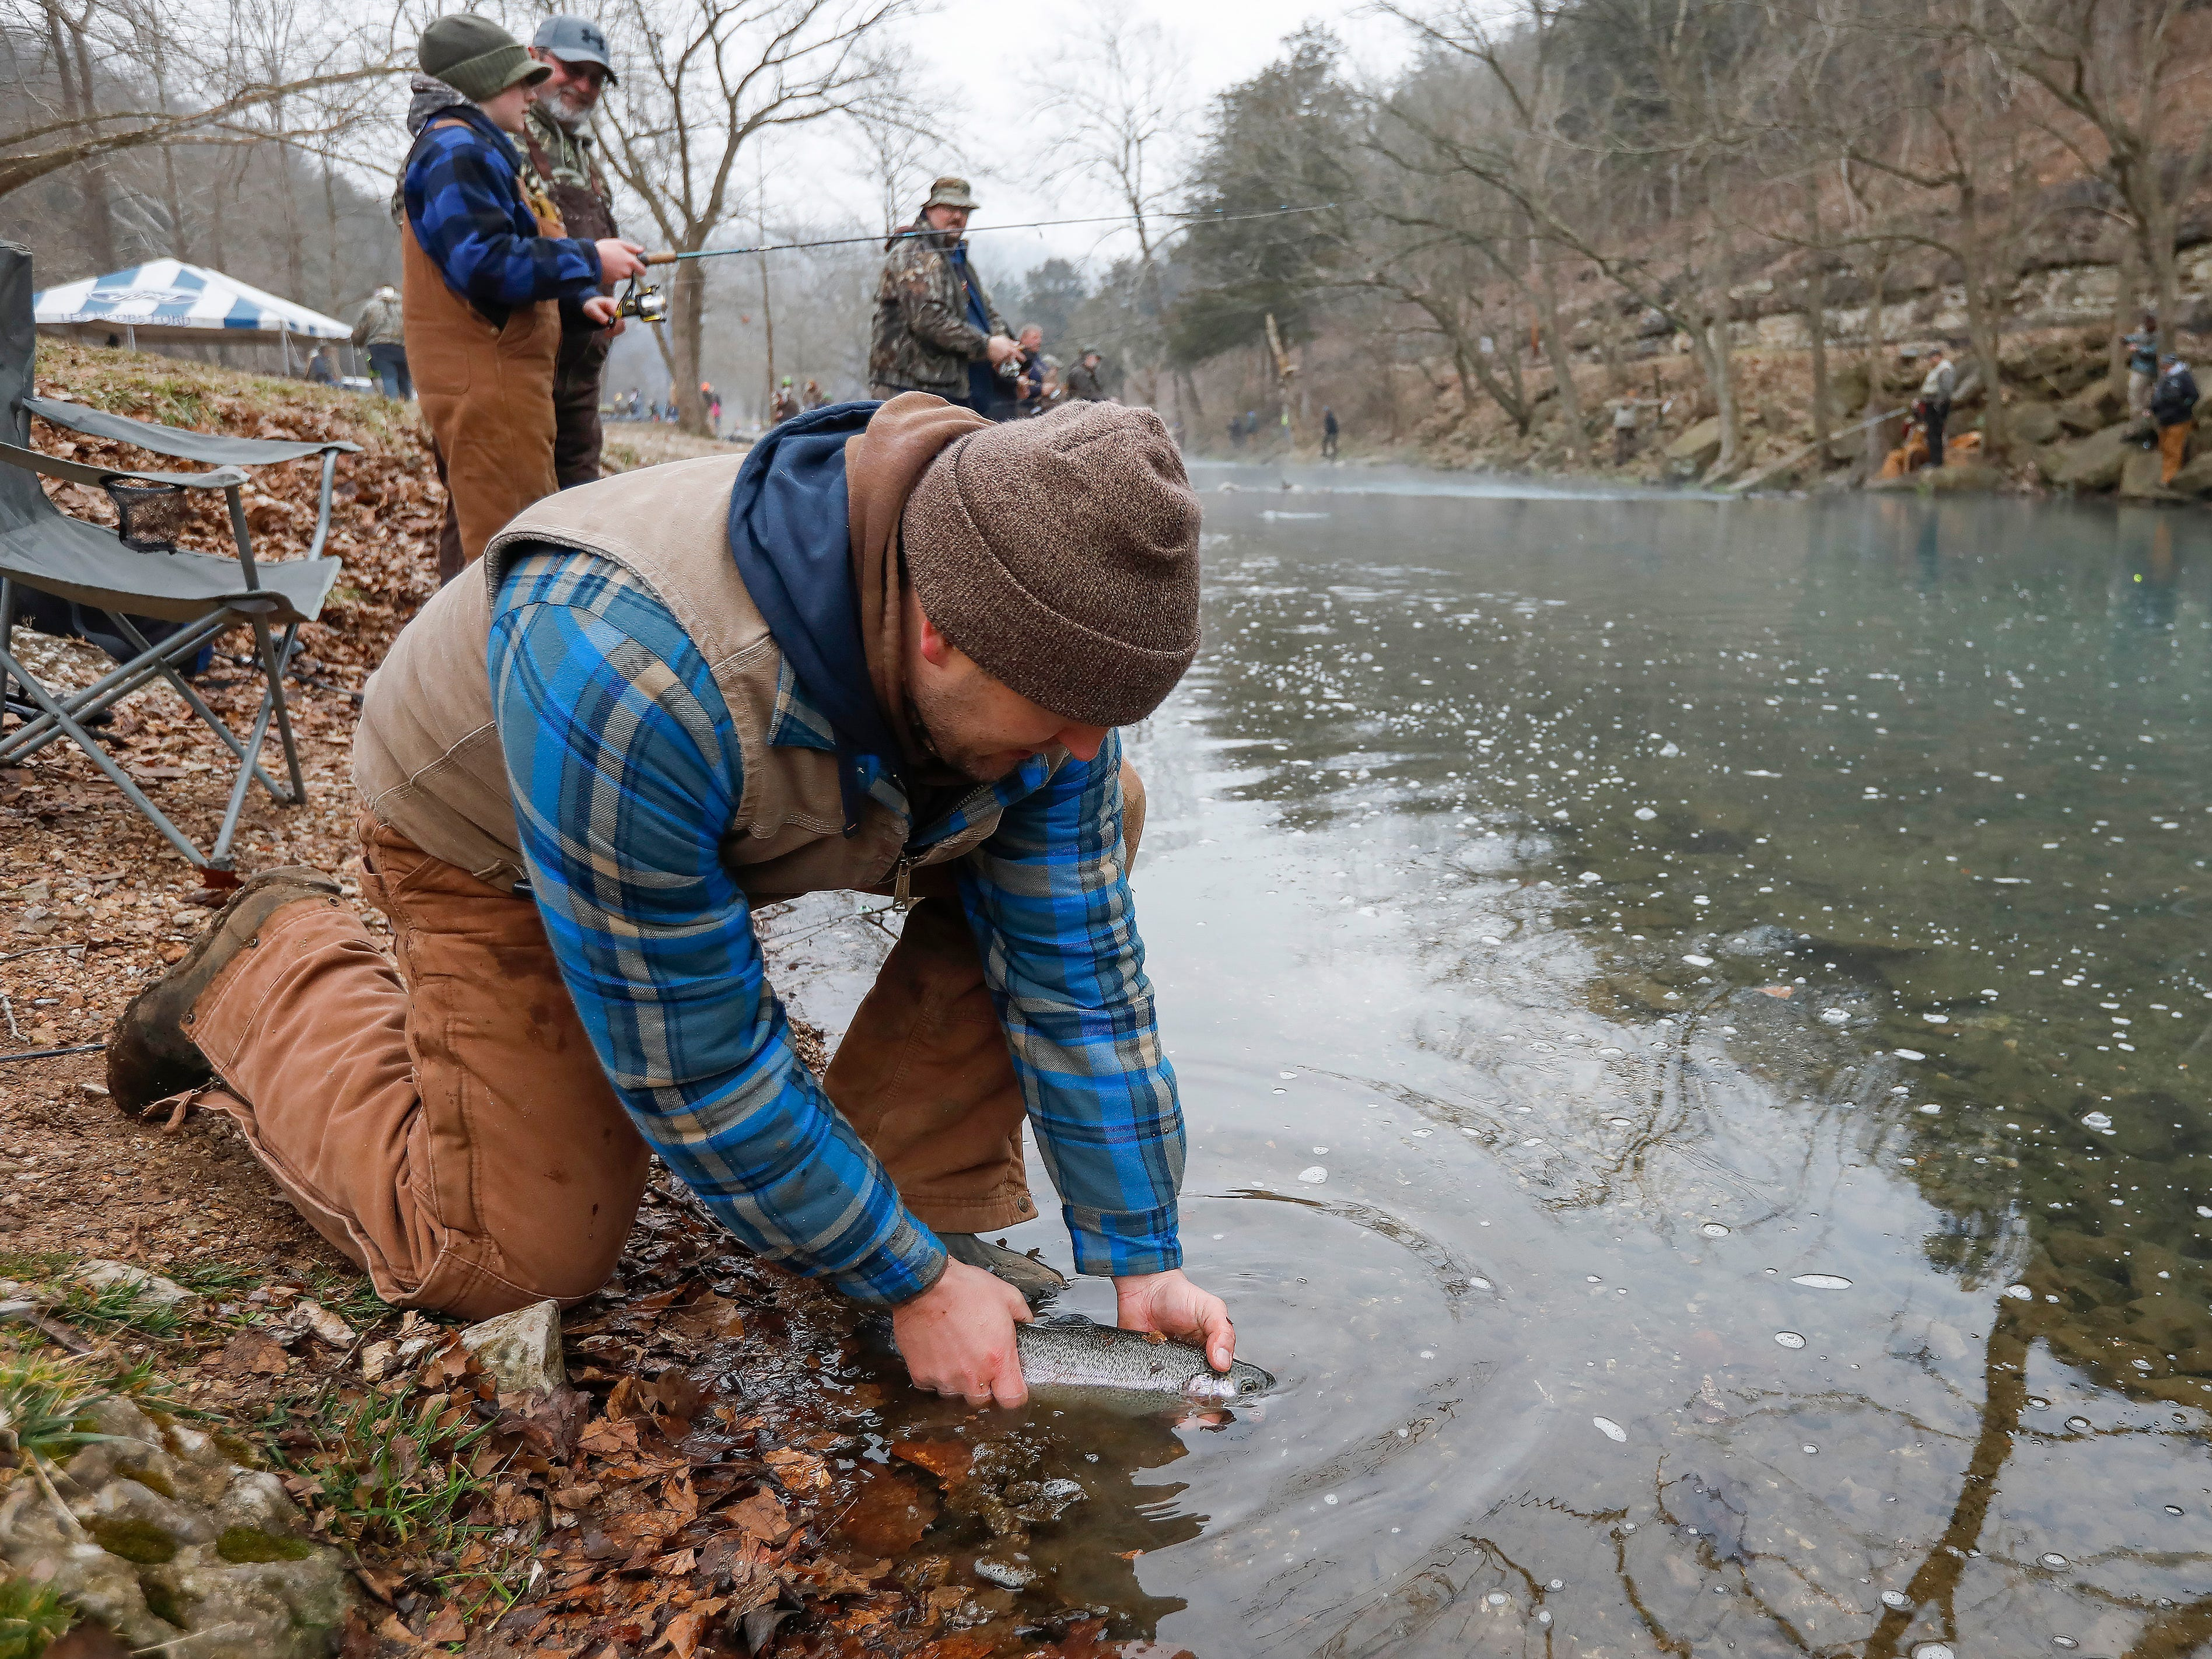 Zach Bellah, of Marrionville, releases a trout he just caught on opening day of trout season at Roaring River State Park on Friday, Mar. 1, 2019.